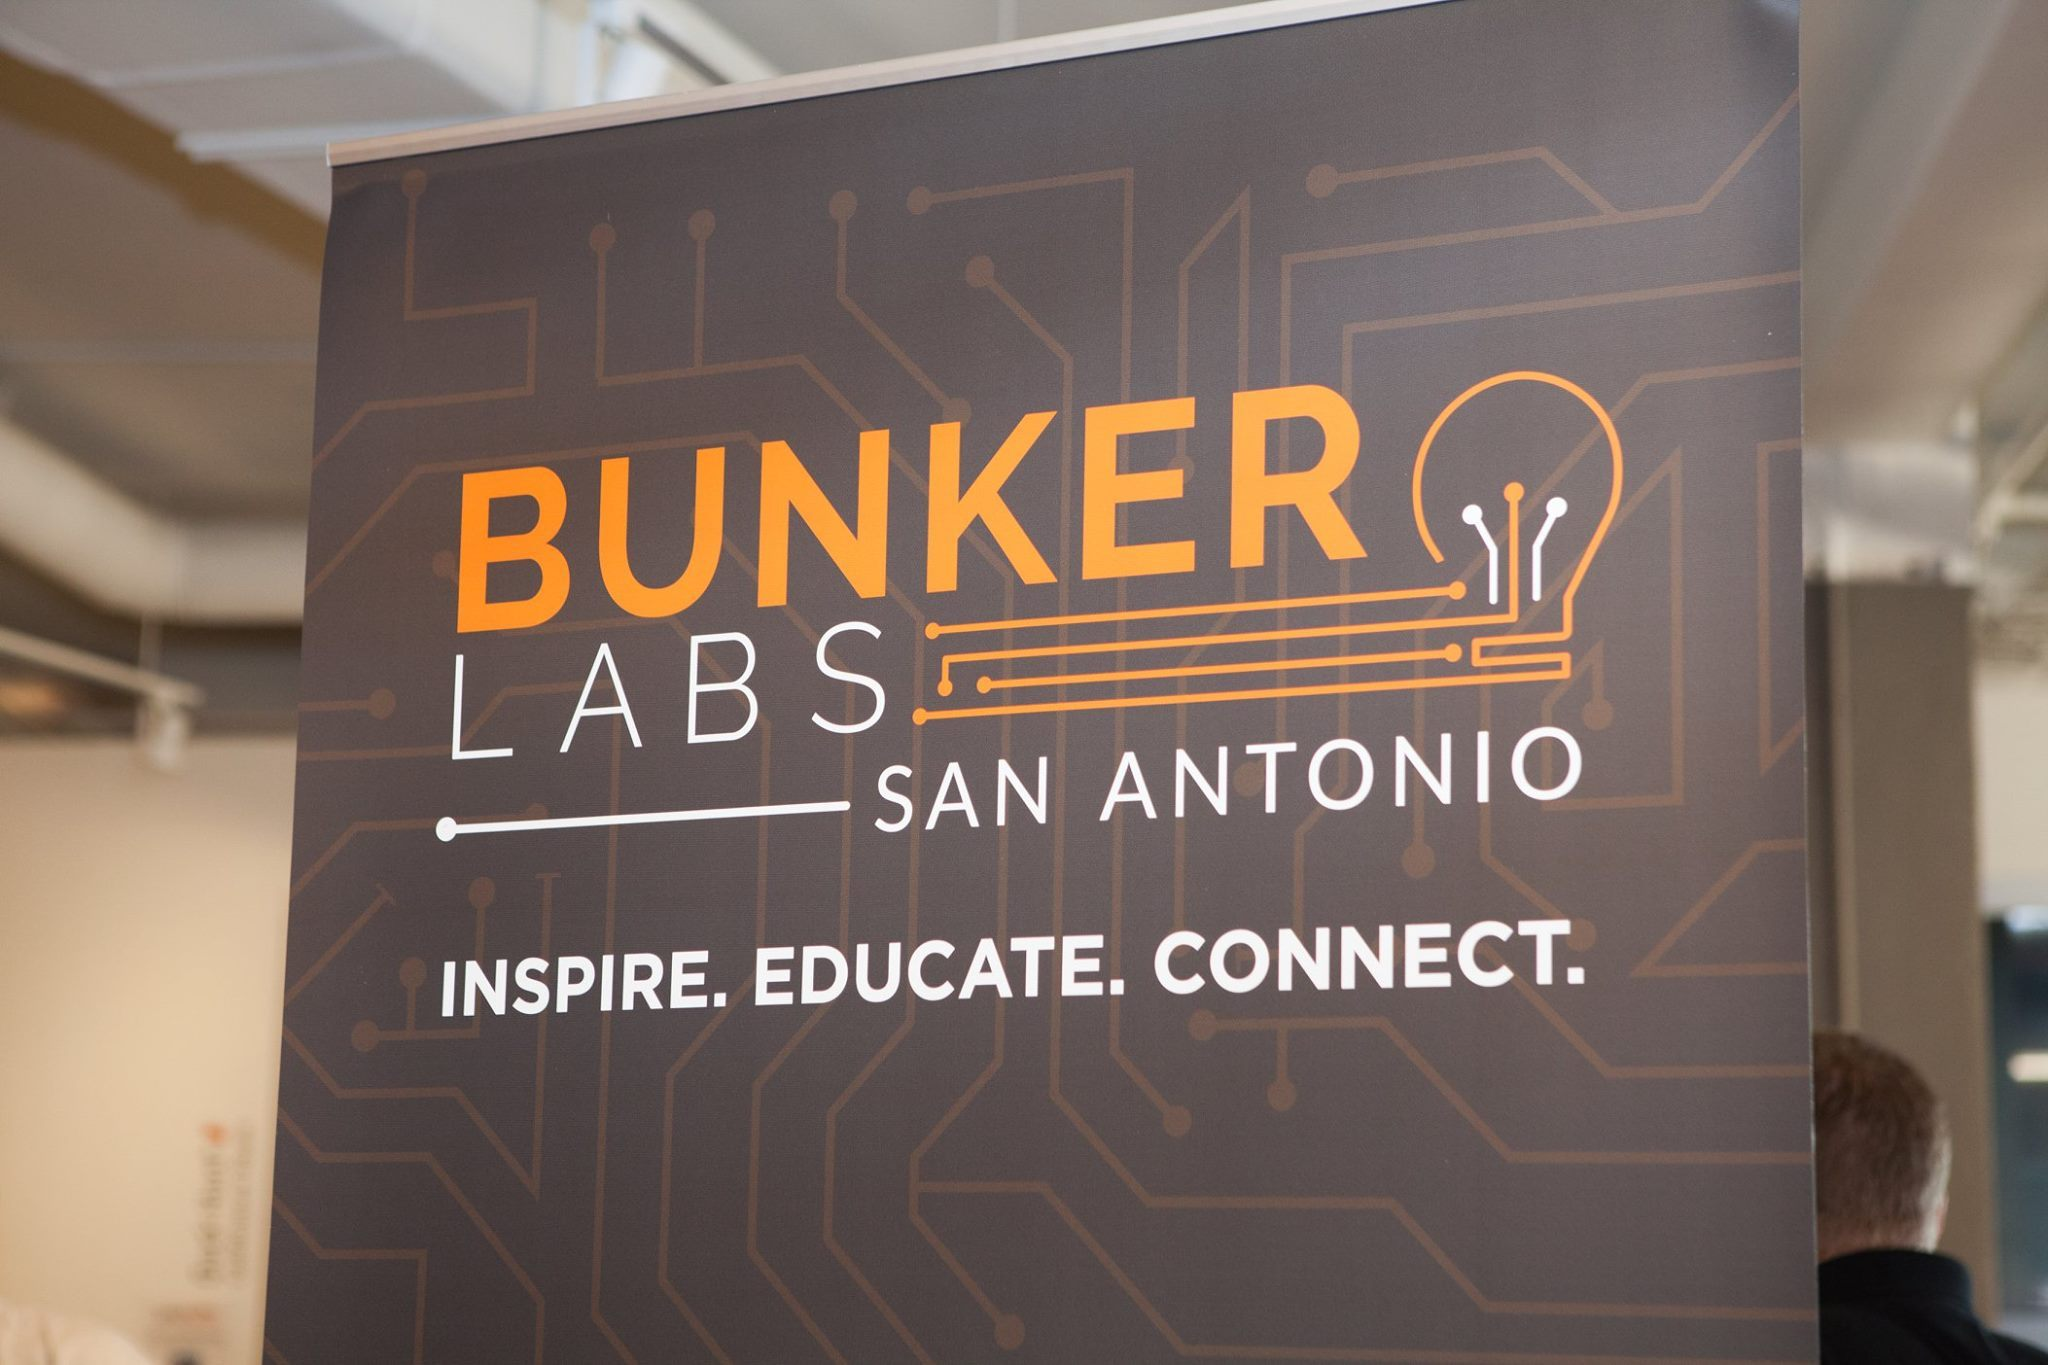 San Antonio Startup Events for the Week of February 25, 2019